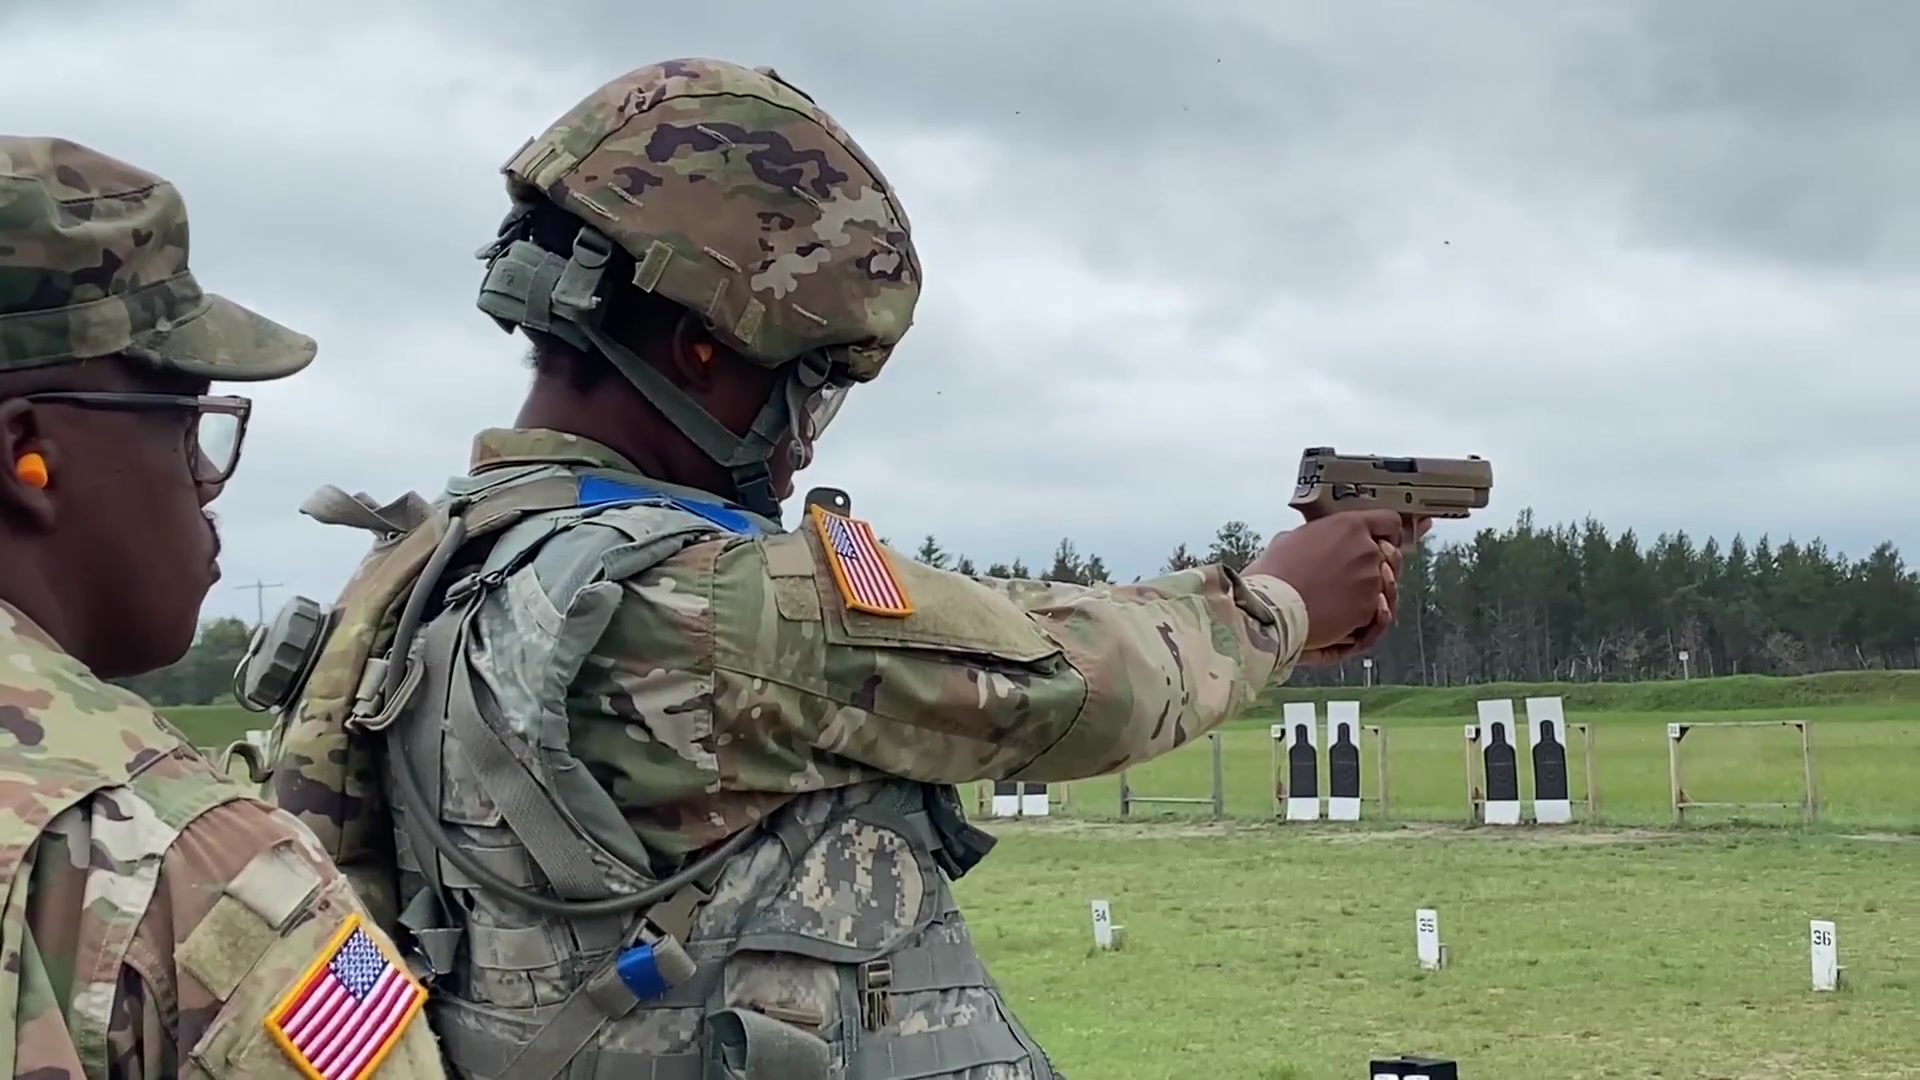 """U.S. Army Reserve Soldiers qualify on the M17 pistol for Excellence in Competition badge in the United States Army Reserve Best Warrior Competition on Fort McCoy, May 23, 2021. Approximately 80 Soldiers from across the nation travelled to Fort McCoy, Wisconsin, to compete in the event that runs from May 19-28, 2021. The 2021 BWC is an annually-recurring competition that brings in the best Soldiers from across the U.S. Army Reserve to earn the title of """"Best Warrior"""" or """"Best Squad"""" among their peers. Competitors are evaluated on their individual ability to adapt and overcome challenging scenarios and battle-focused events, which test their technical and tactical abilities under stress and extreme fatigue. (Video by Army Sgt. Jonathan Over)"""